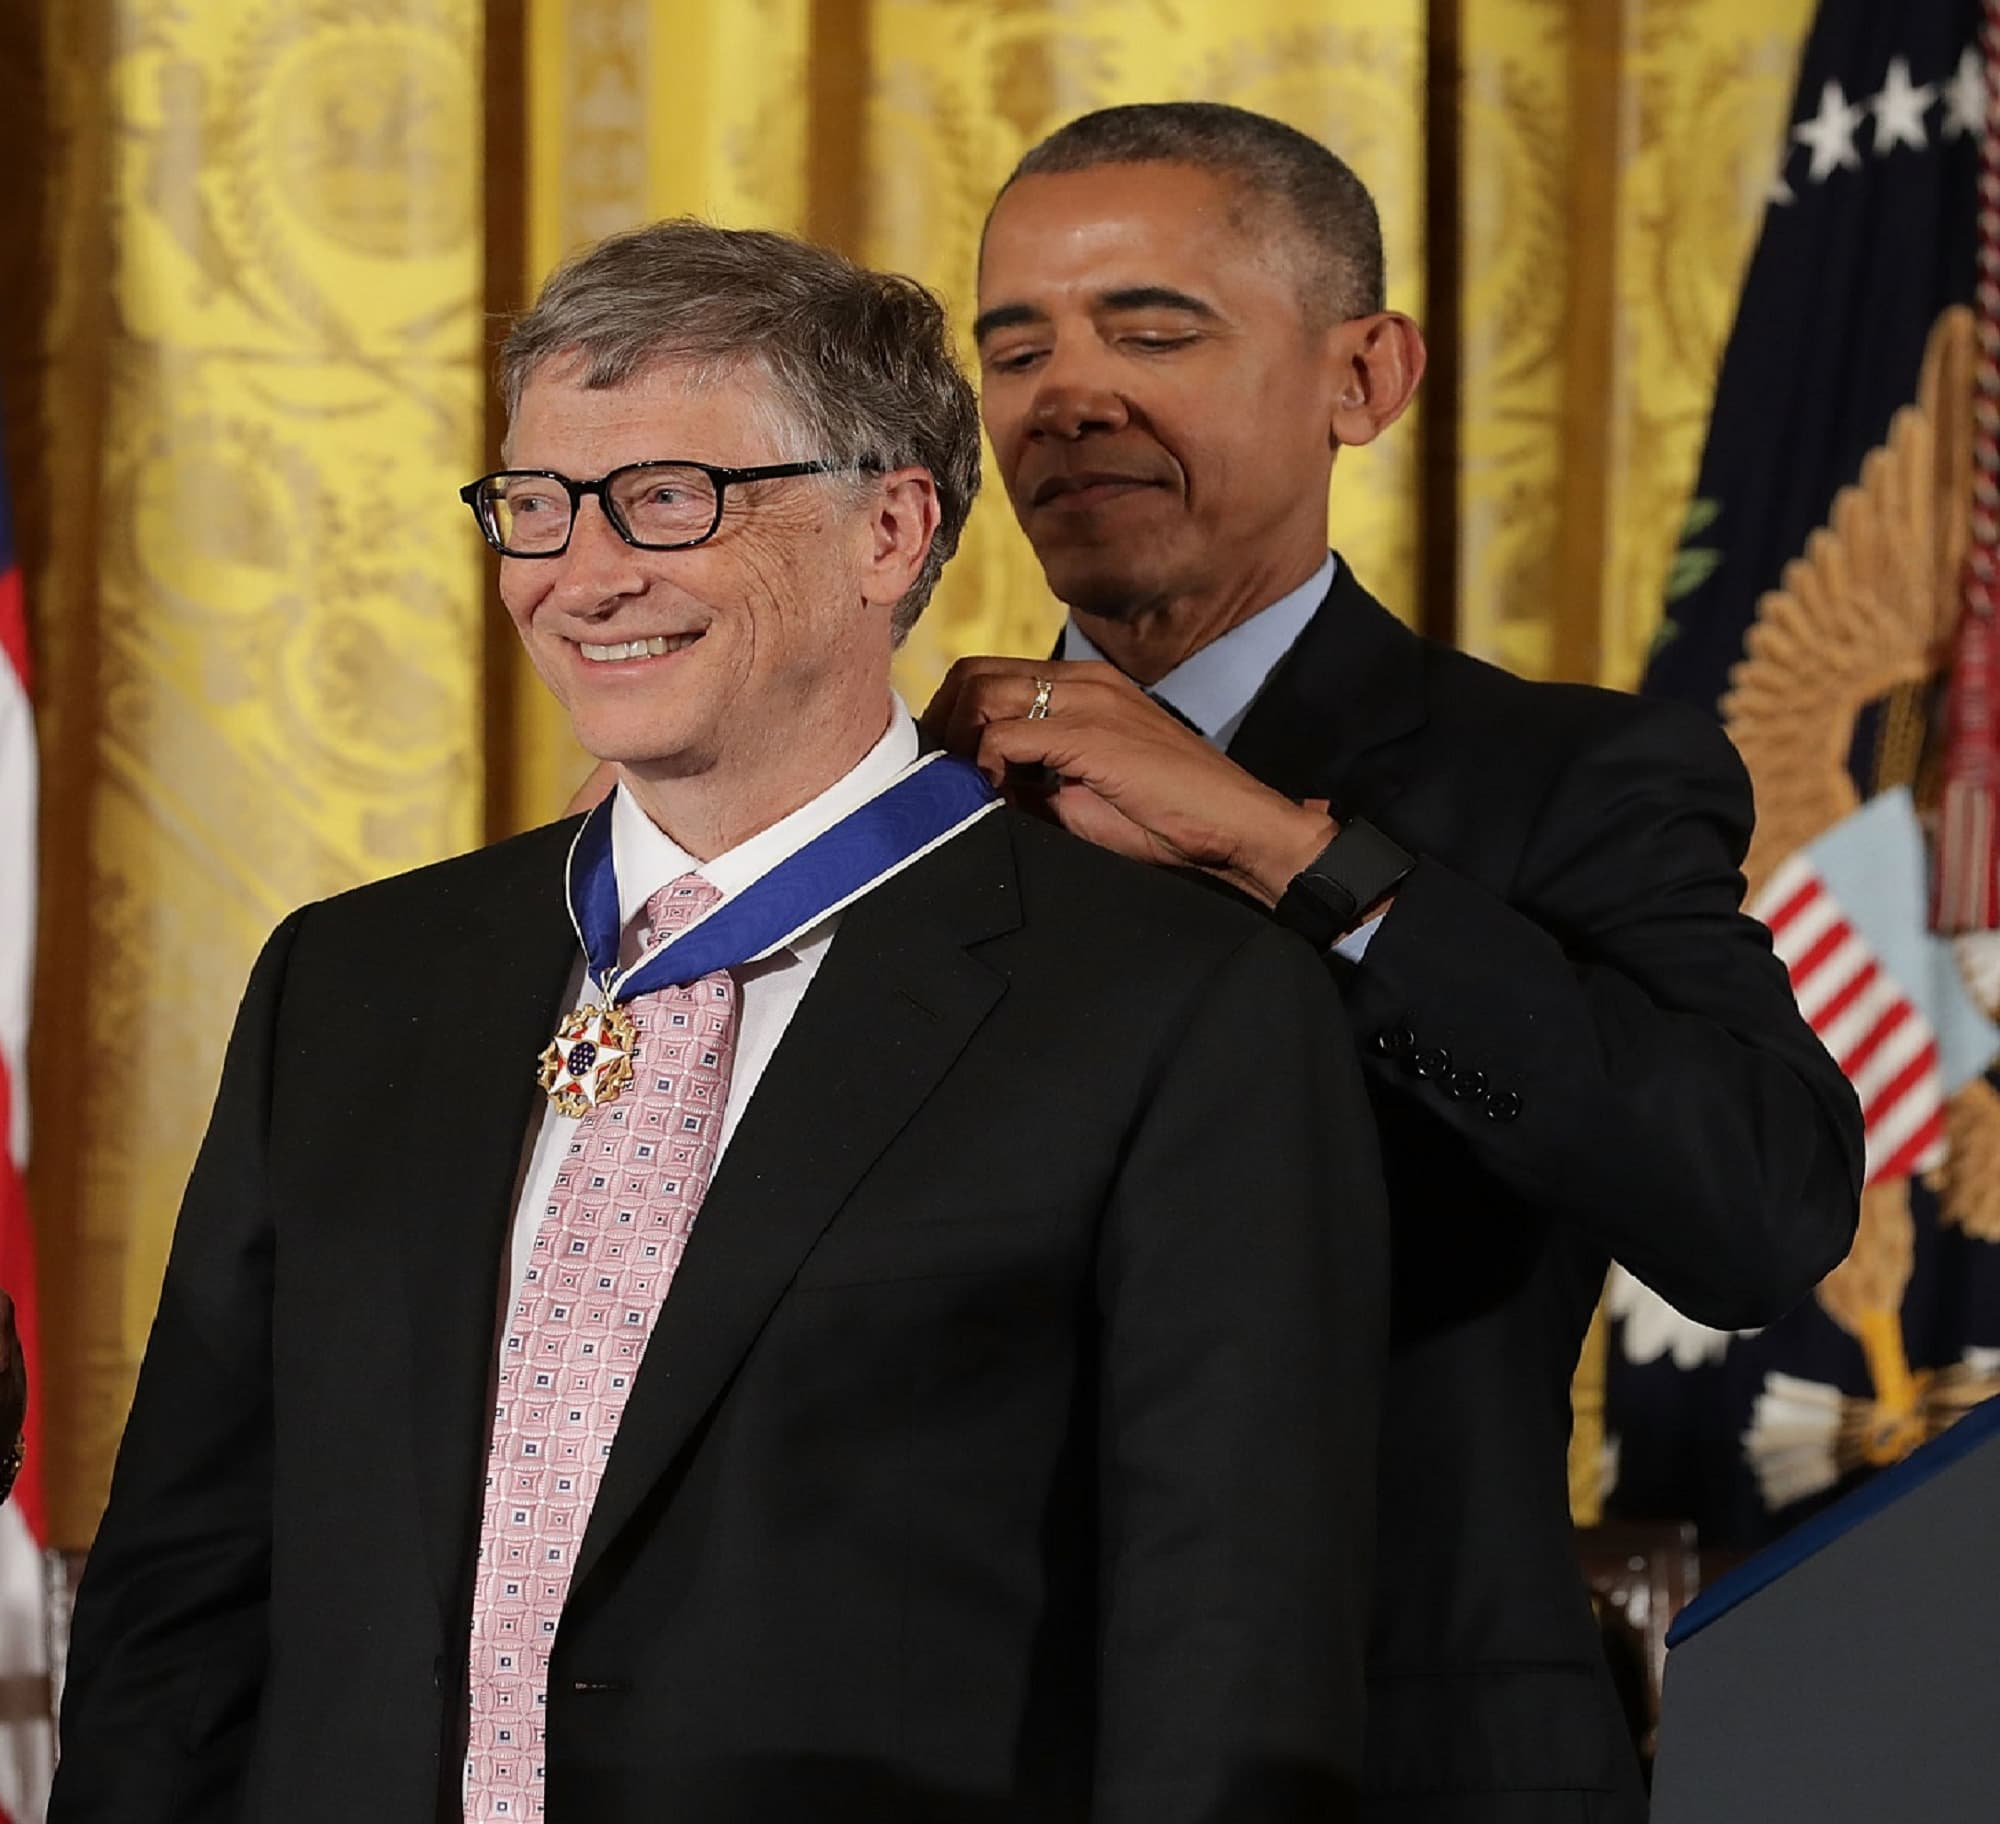 Why Bill Gates won't run for president in 2020